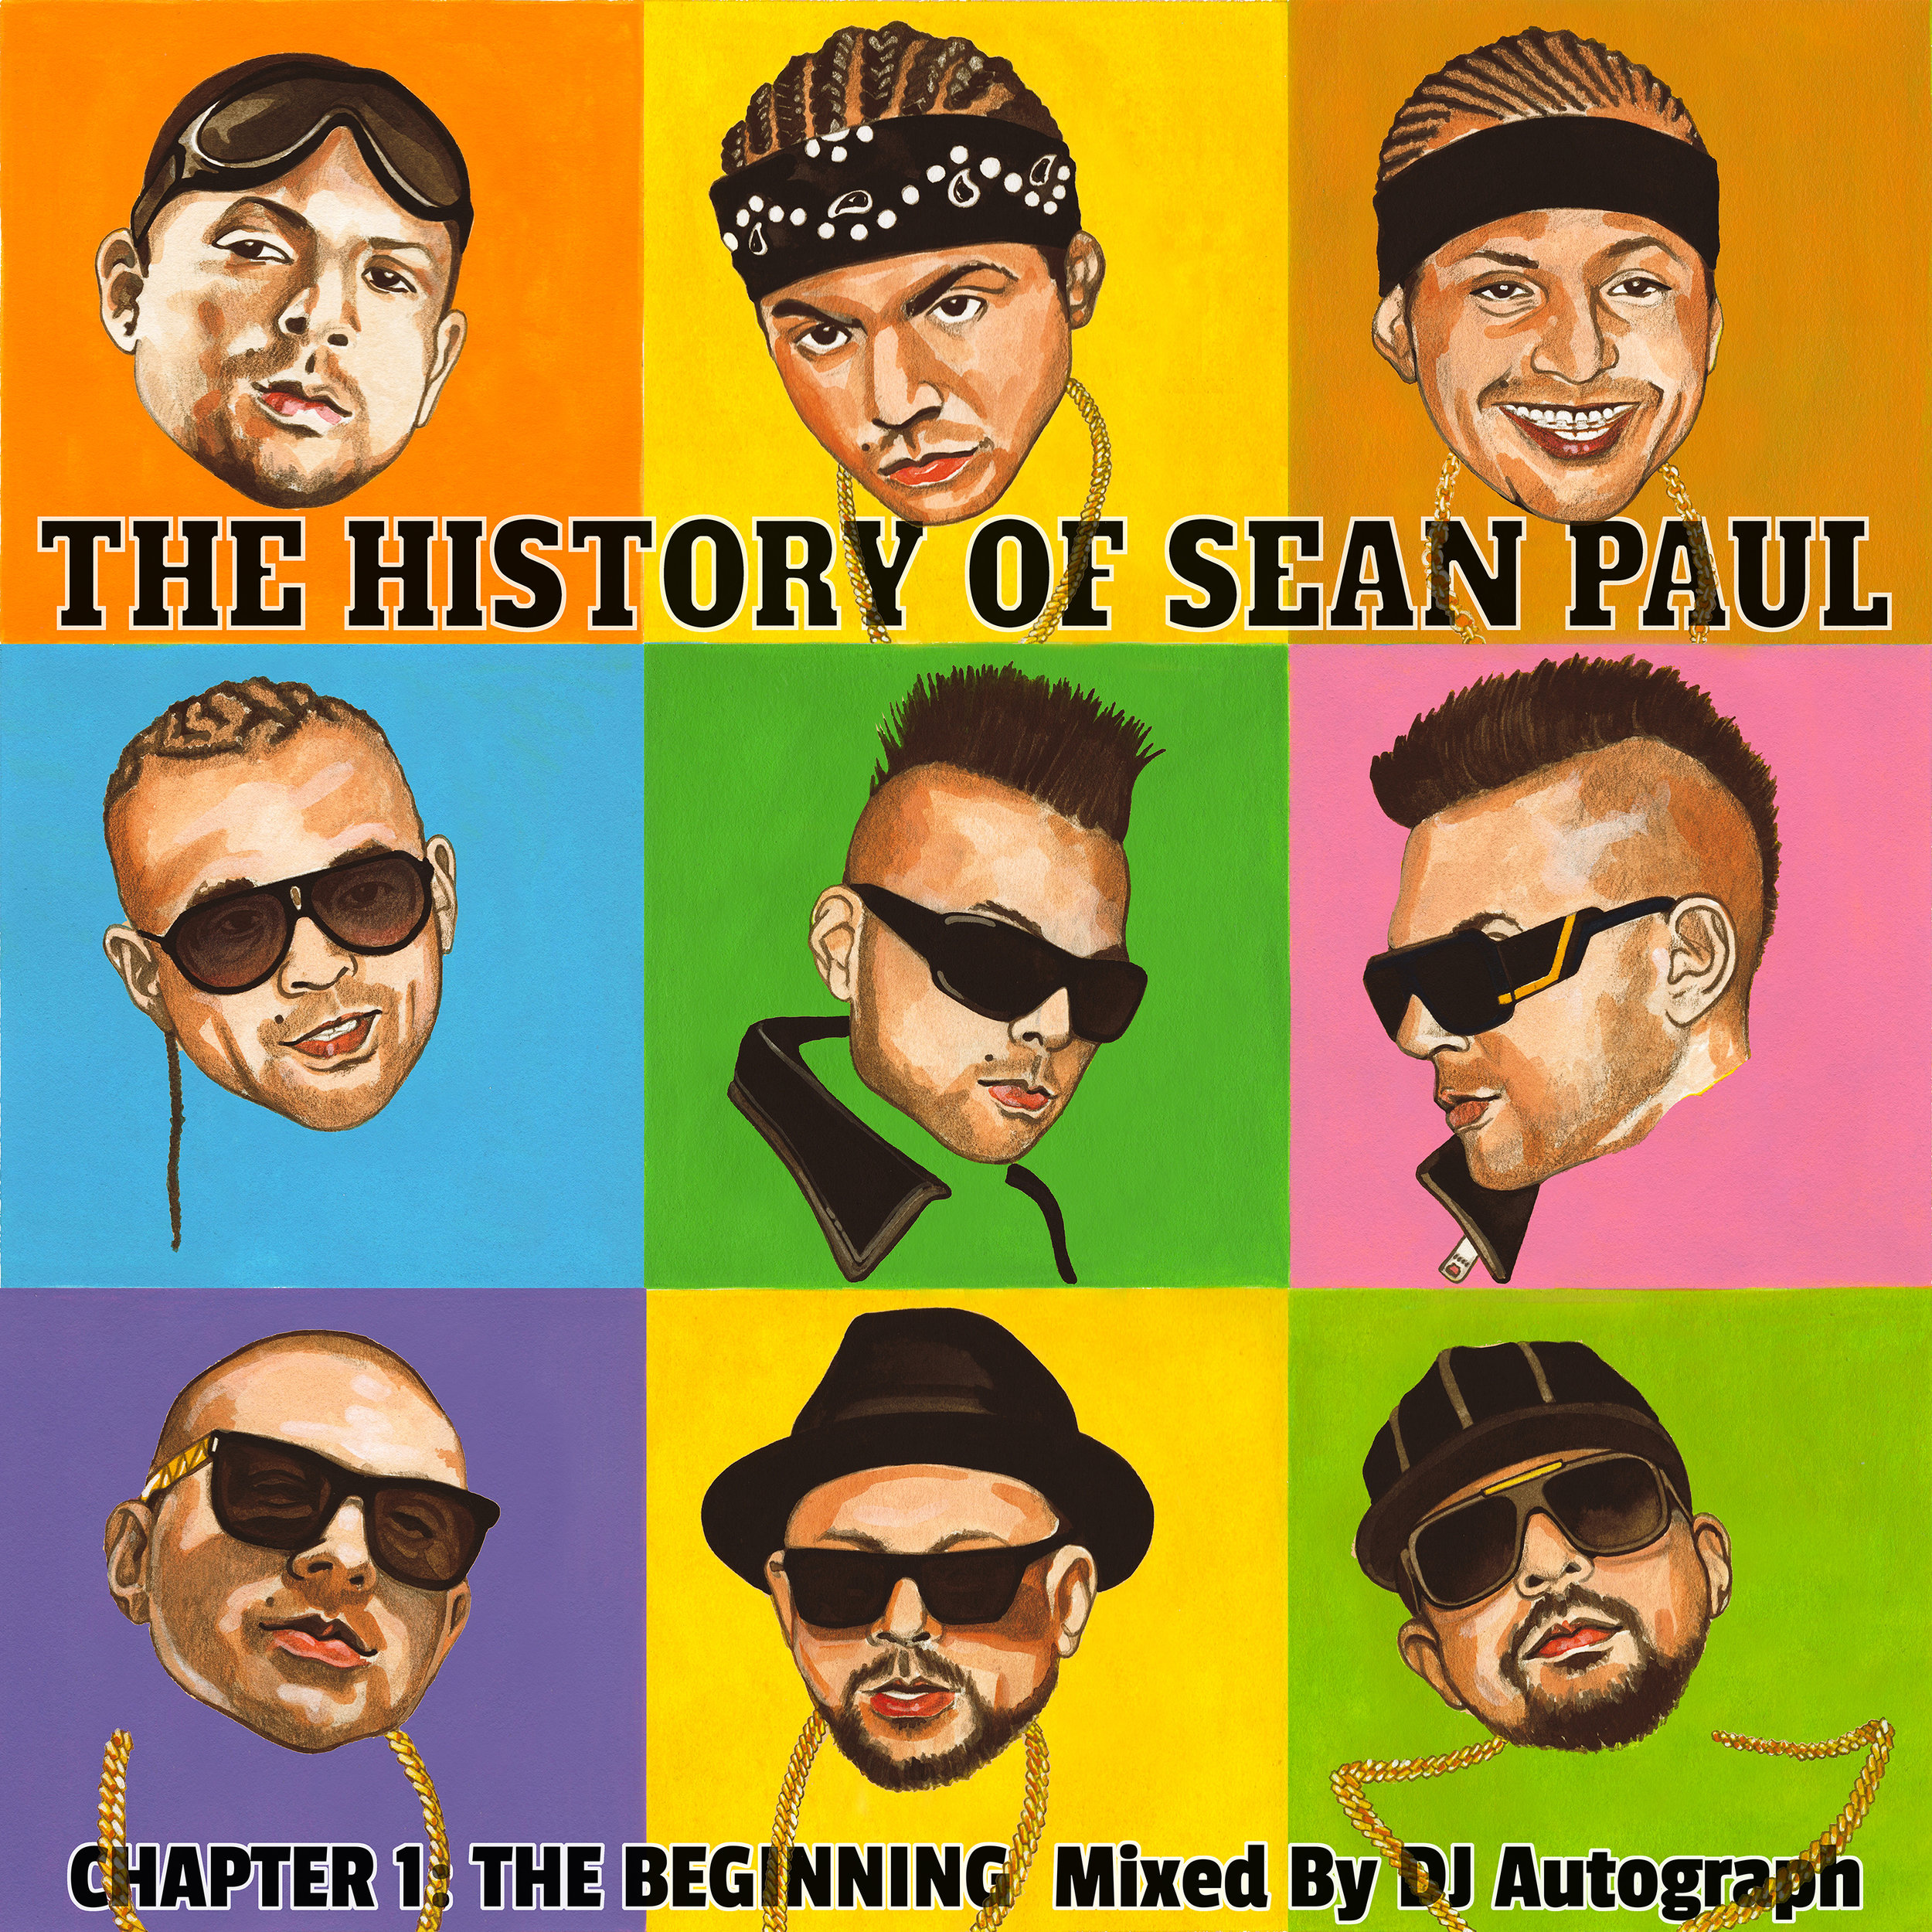 DJ Autograph - The History of Sean Paul (mixtape/interviews)